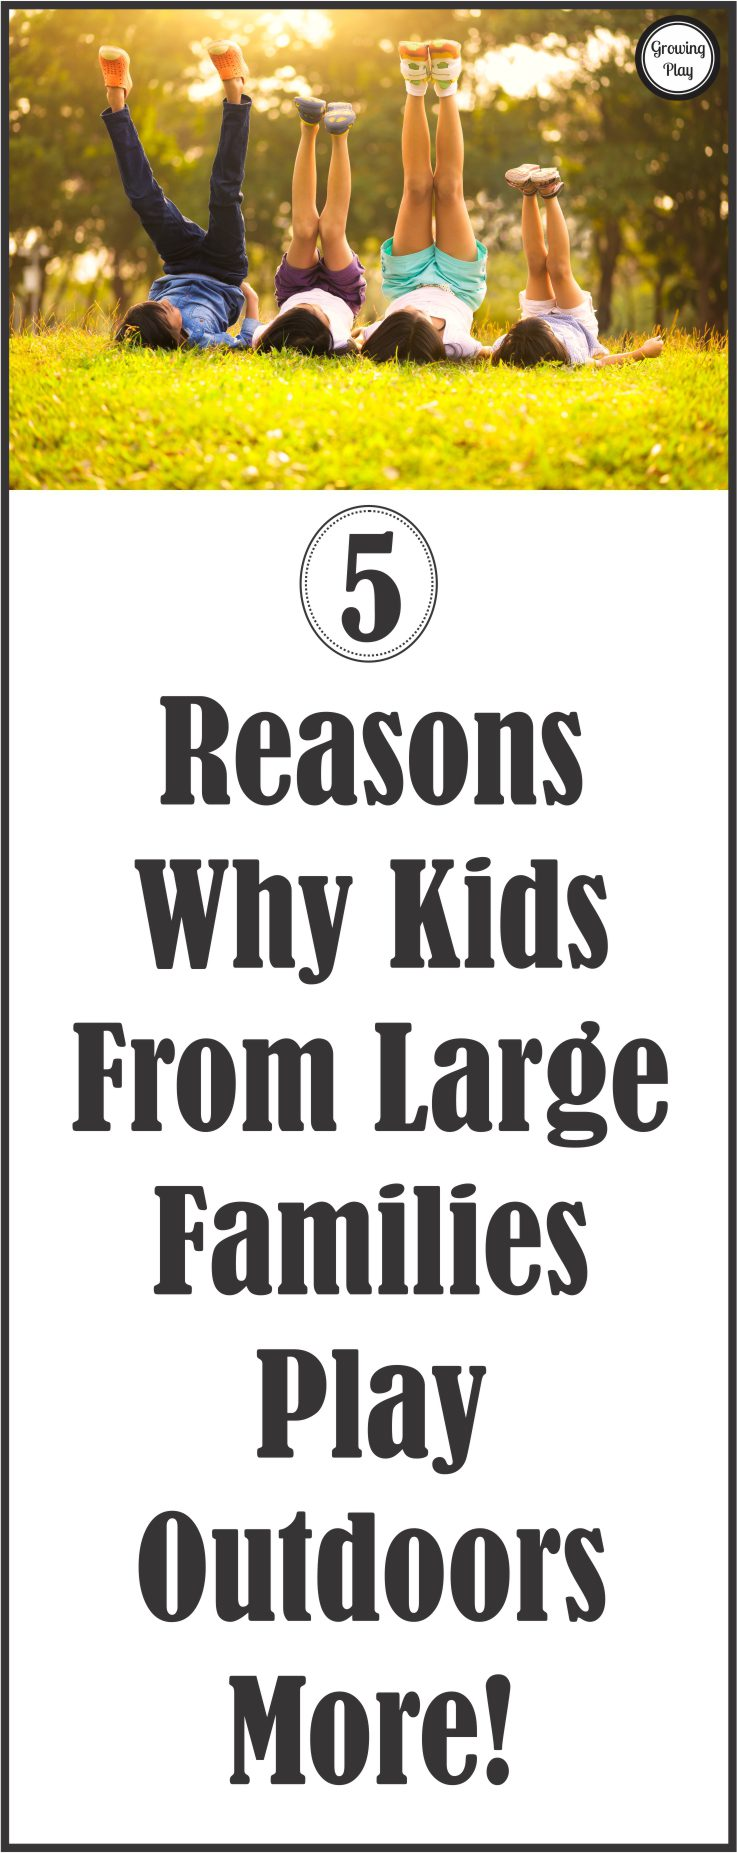 5 Reasons Why Kids From Large Families Play Outdoors More